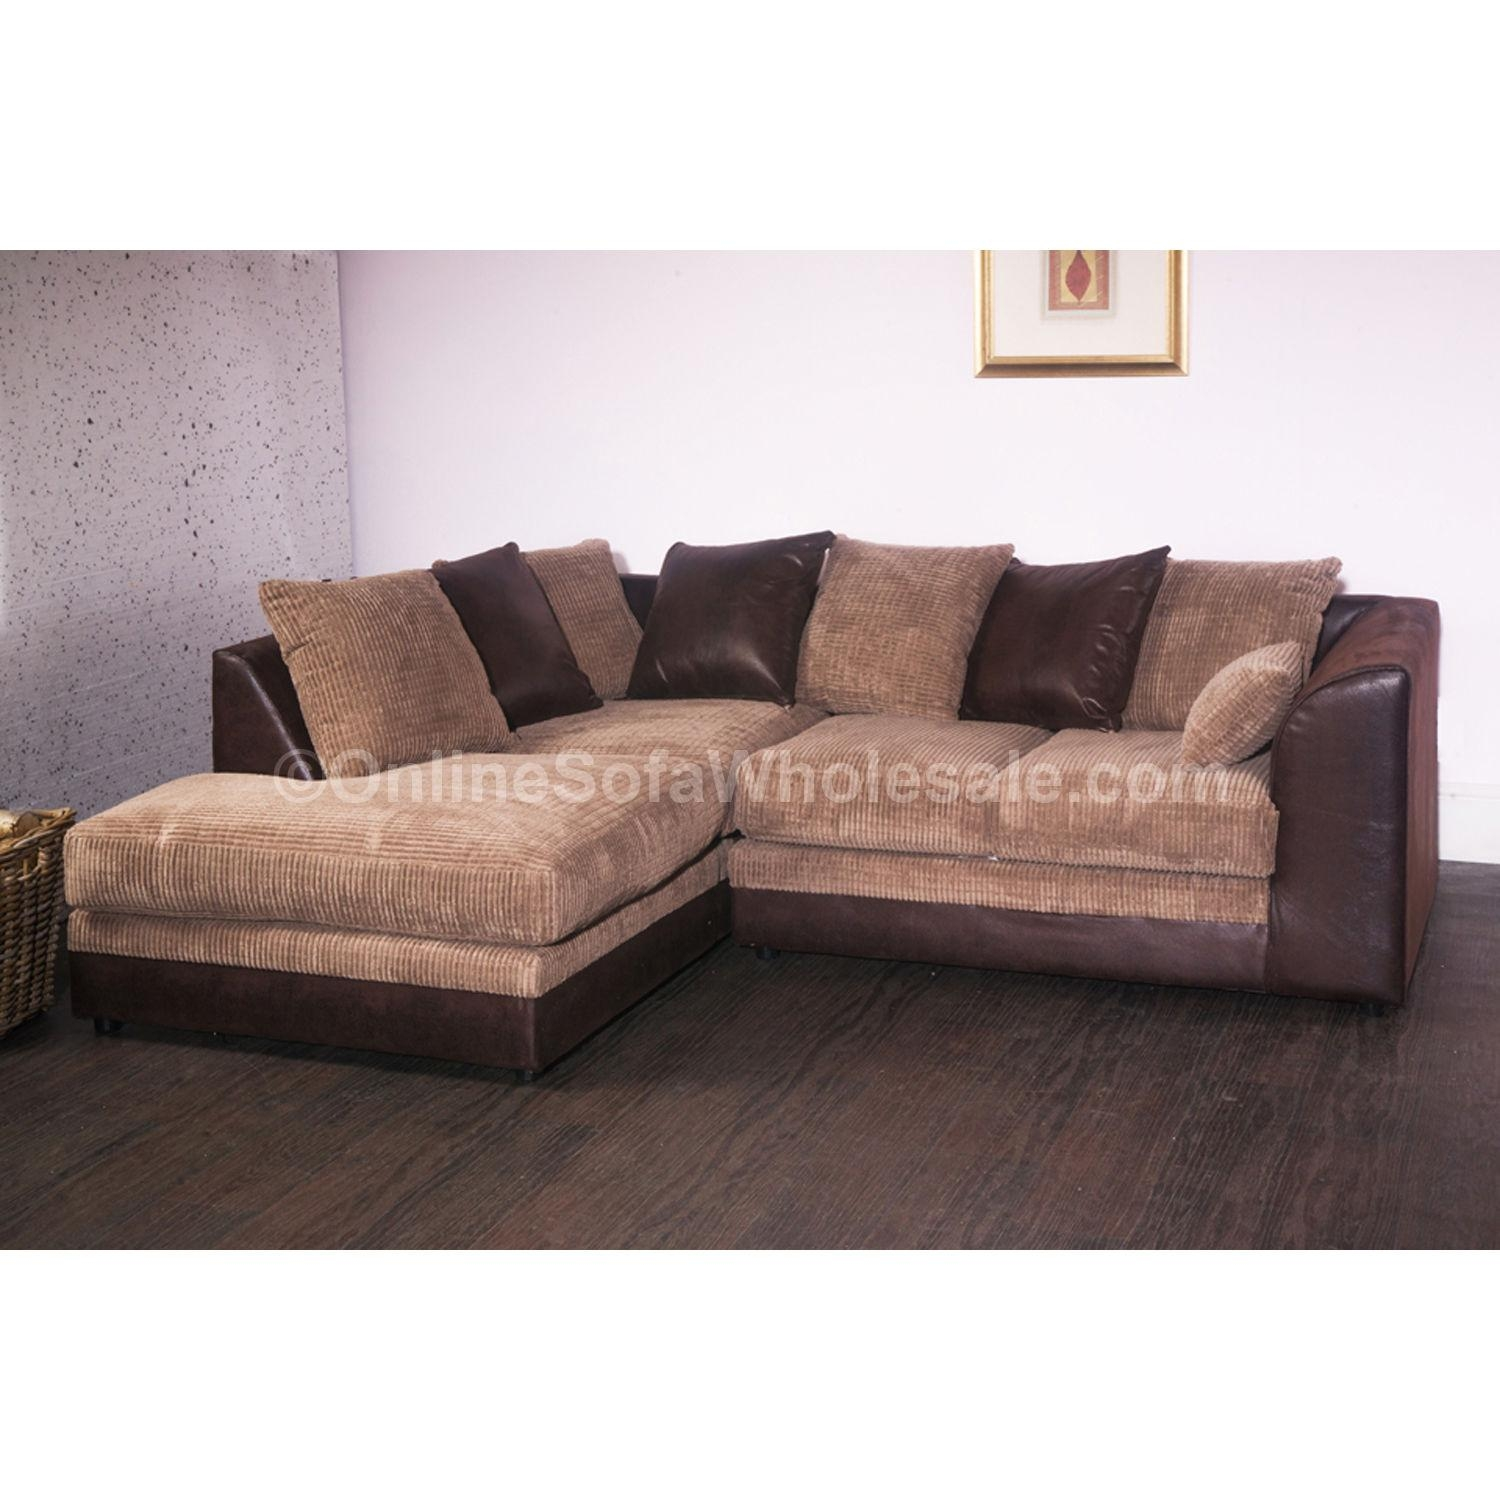 Fabric Corner Sofas Cheap – Simoon – Simoon Pertaining To Cheap Corner Sofa (Image 11 of 20)